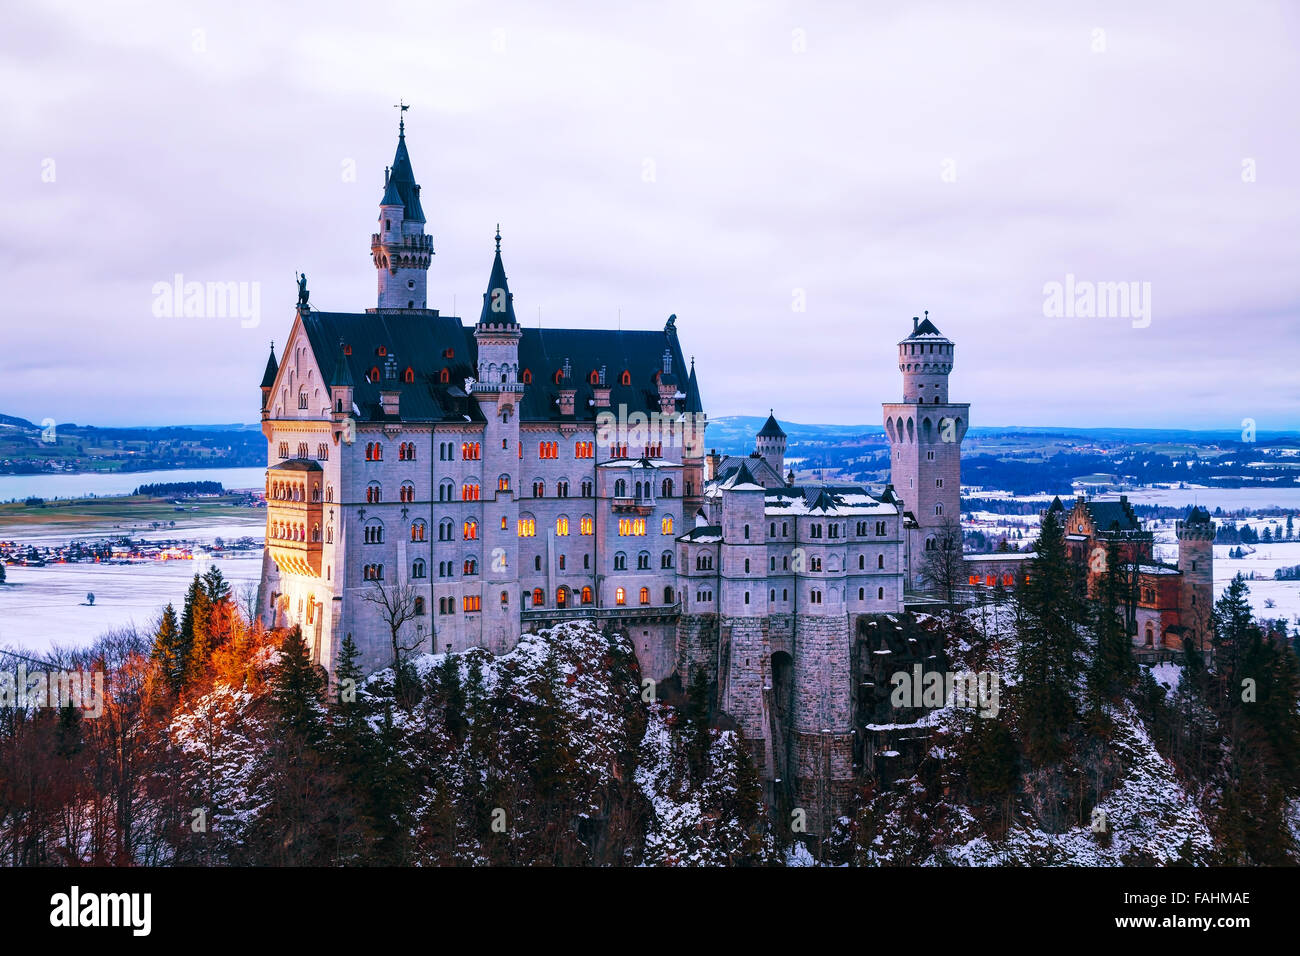 Neuschwanstein castle in Bavaria, Germany at winter time - Stock Image